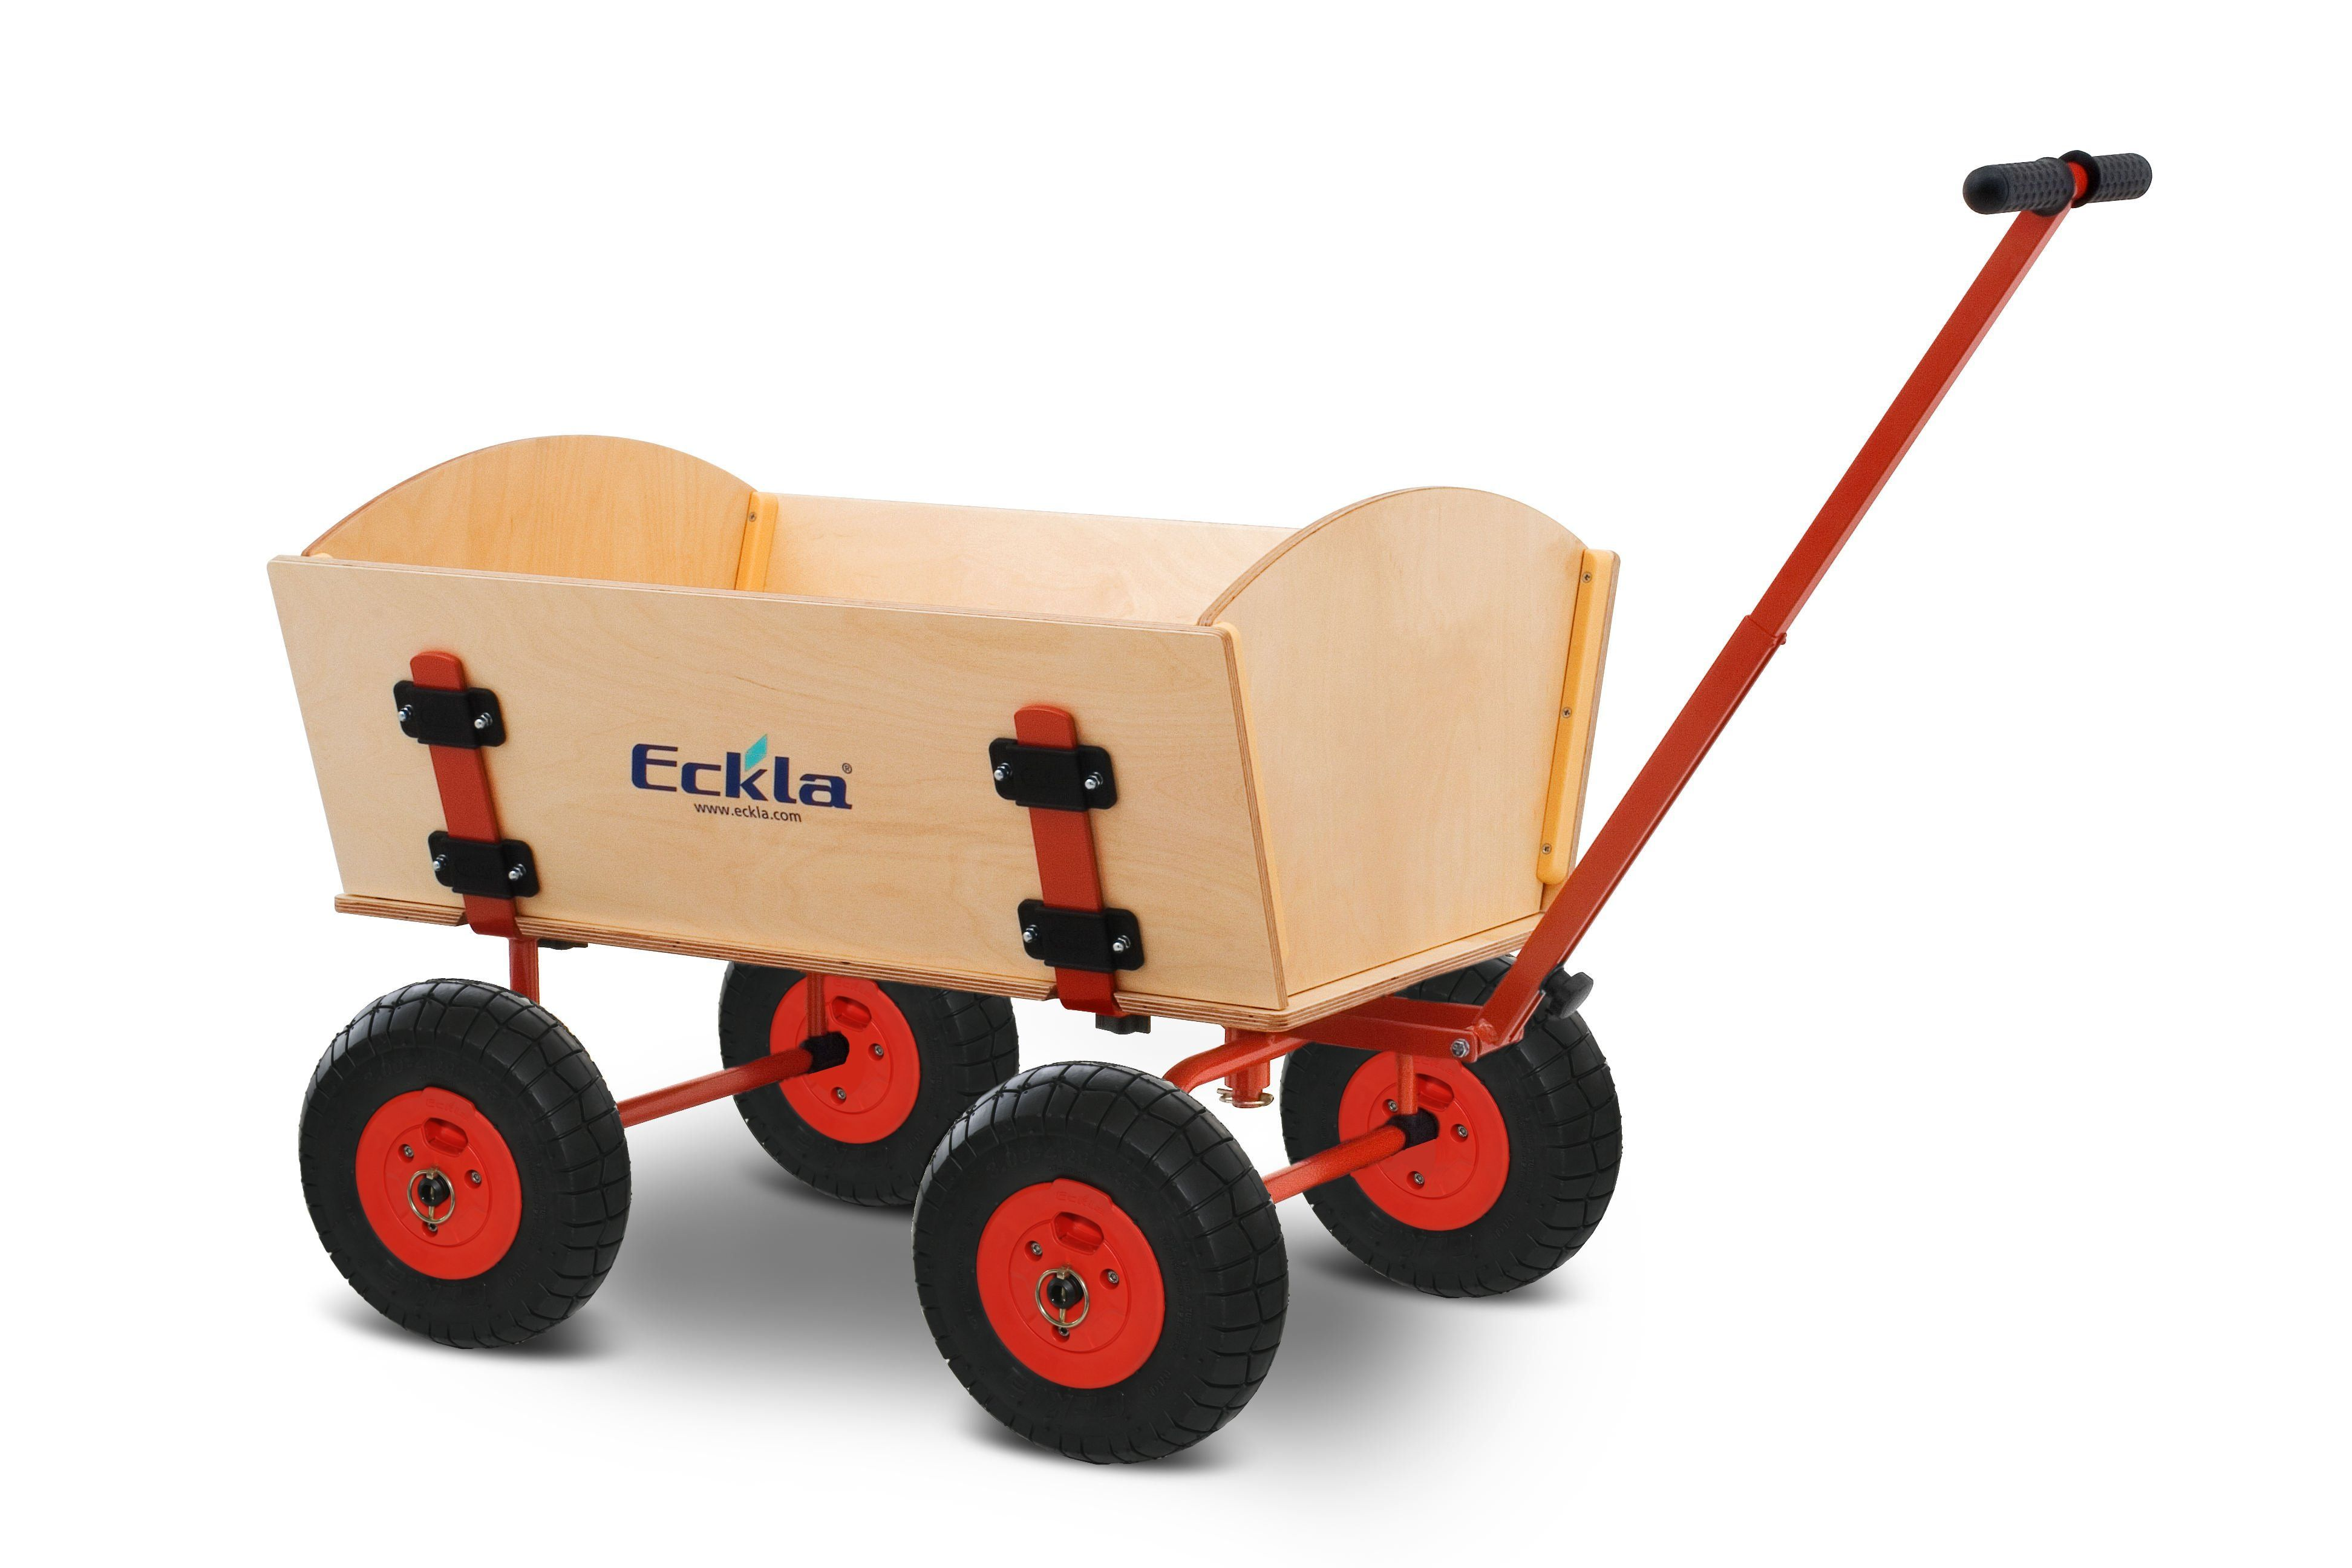 ECKLA_Easy_Trailer_77800_nR